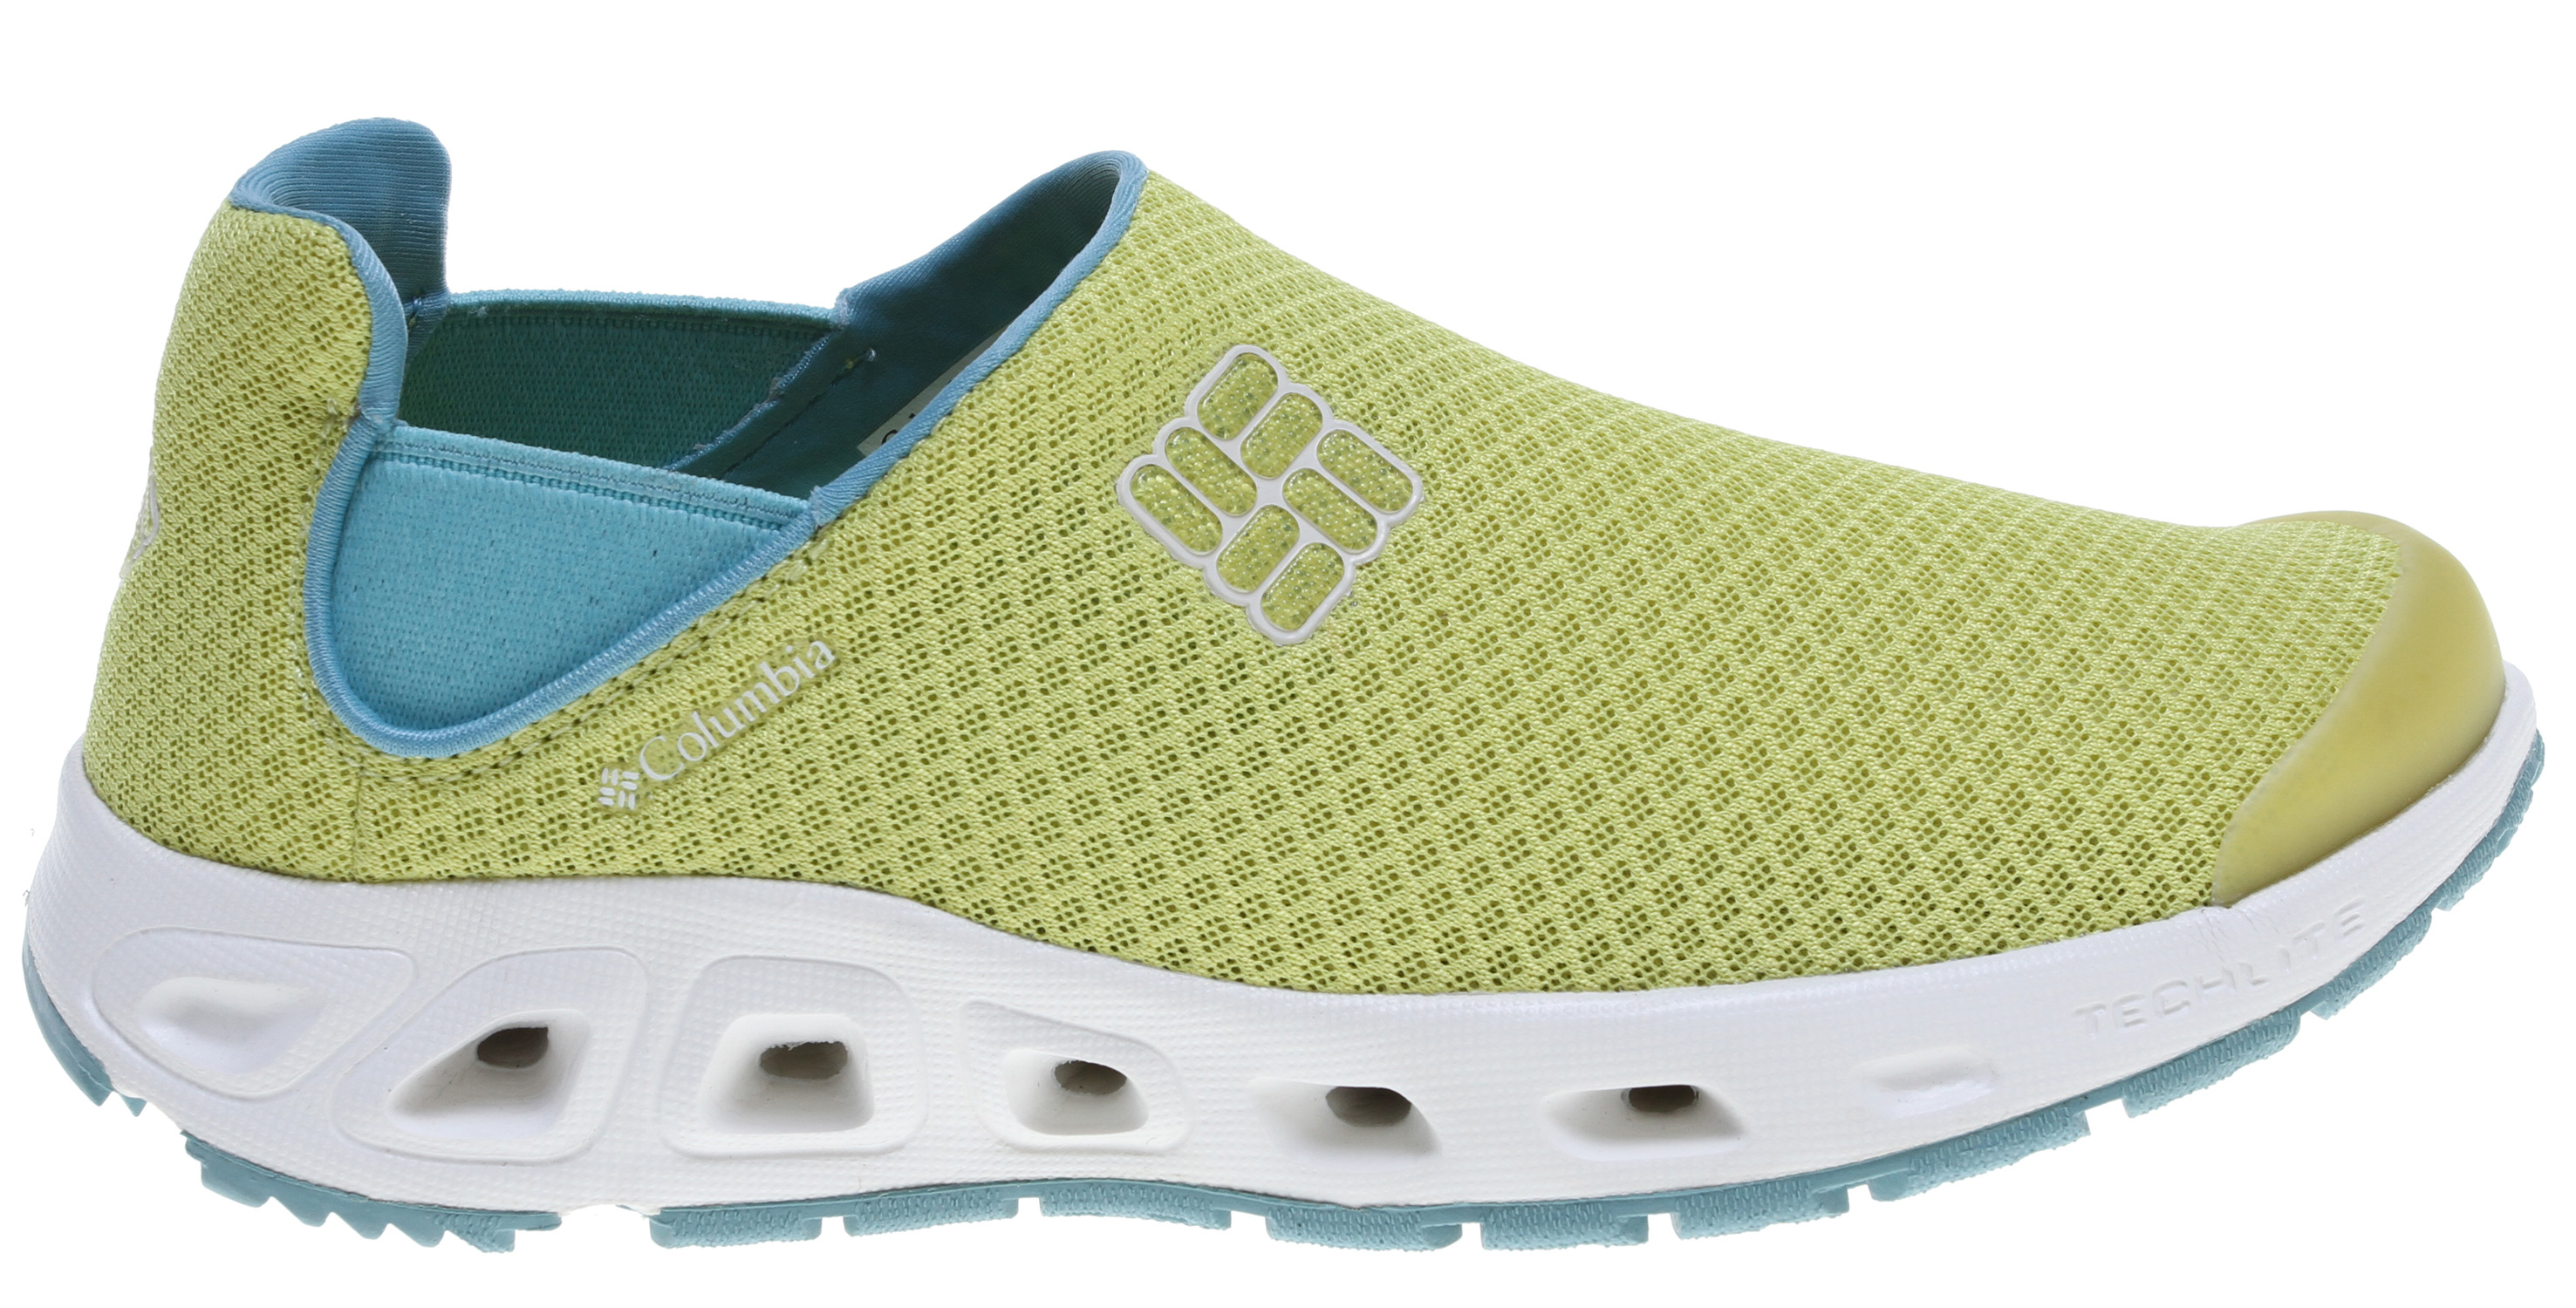 Slip-on construction makes this shoe easy to get on and off while the mesh upper, fully drainable footbed and water-specific siped outsole keep you comfortable and protected during activities in and around the water. Key Features of the Columbia Drainslip II Water Shoes: Techlite lightweight cushioned midsole Omni-Grip high traction wet grip rubber Single layer mesh/foam upper Fully drainable footbed Siped with lugs for extra traction Weight: size 7, 1/2 pair = 7.2 oz/204.12g Imported UPPER Single layer mesh/foam, Techlite technology MIDSOLE Techlite technology OMNI-GRIP OUTSOLE High traction rubber - $49.95